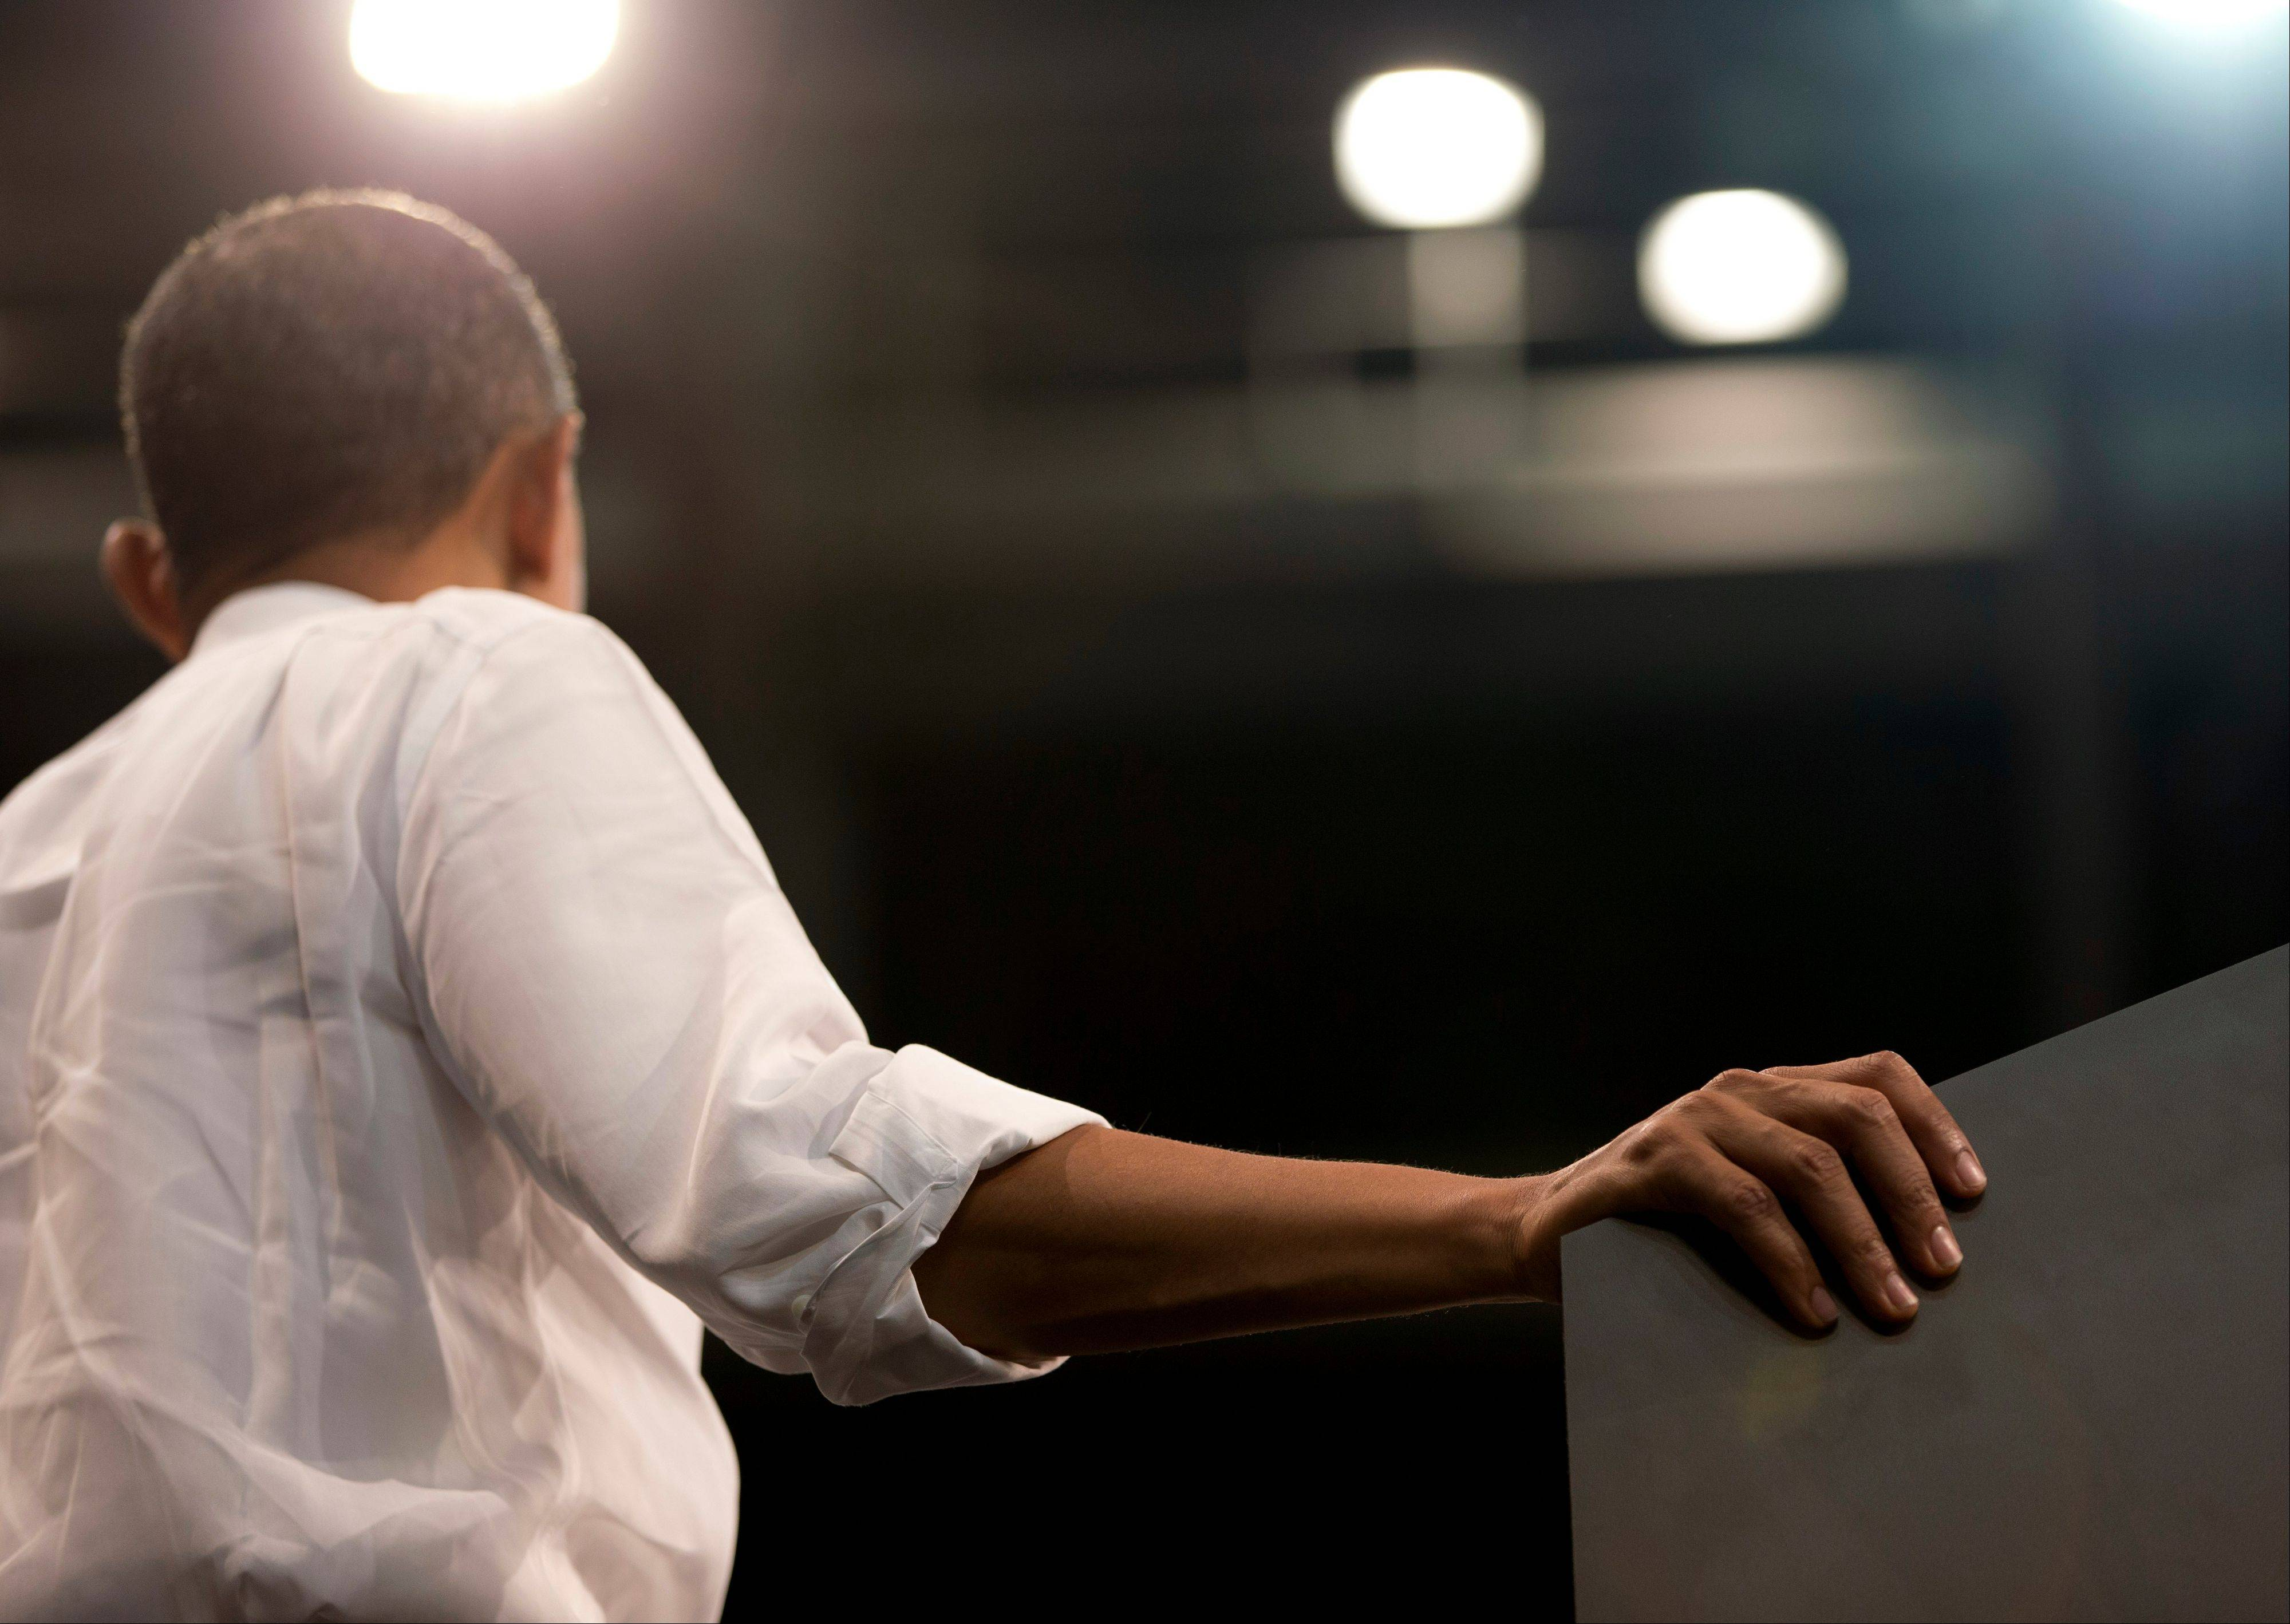 President Barack Obama rests his hand on the podium as he speaks at a campaign event at the University of Miami, Thursday, Oct. 11, 2012, in Coral Gables, Fla.